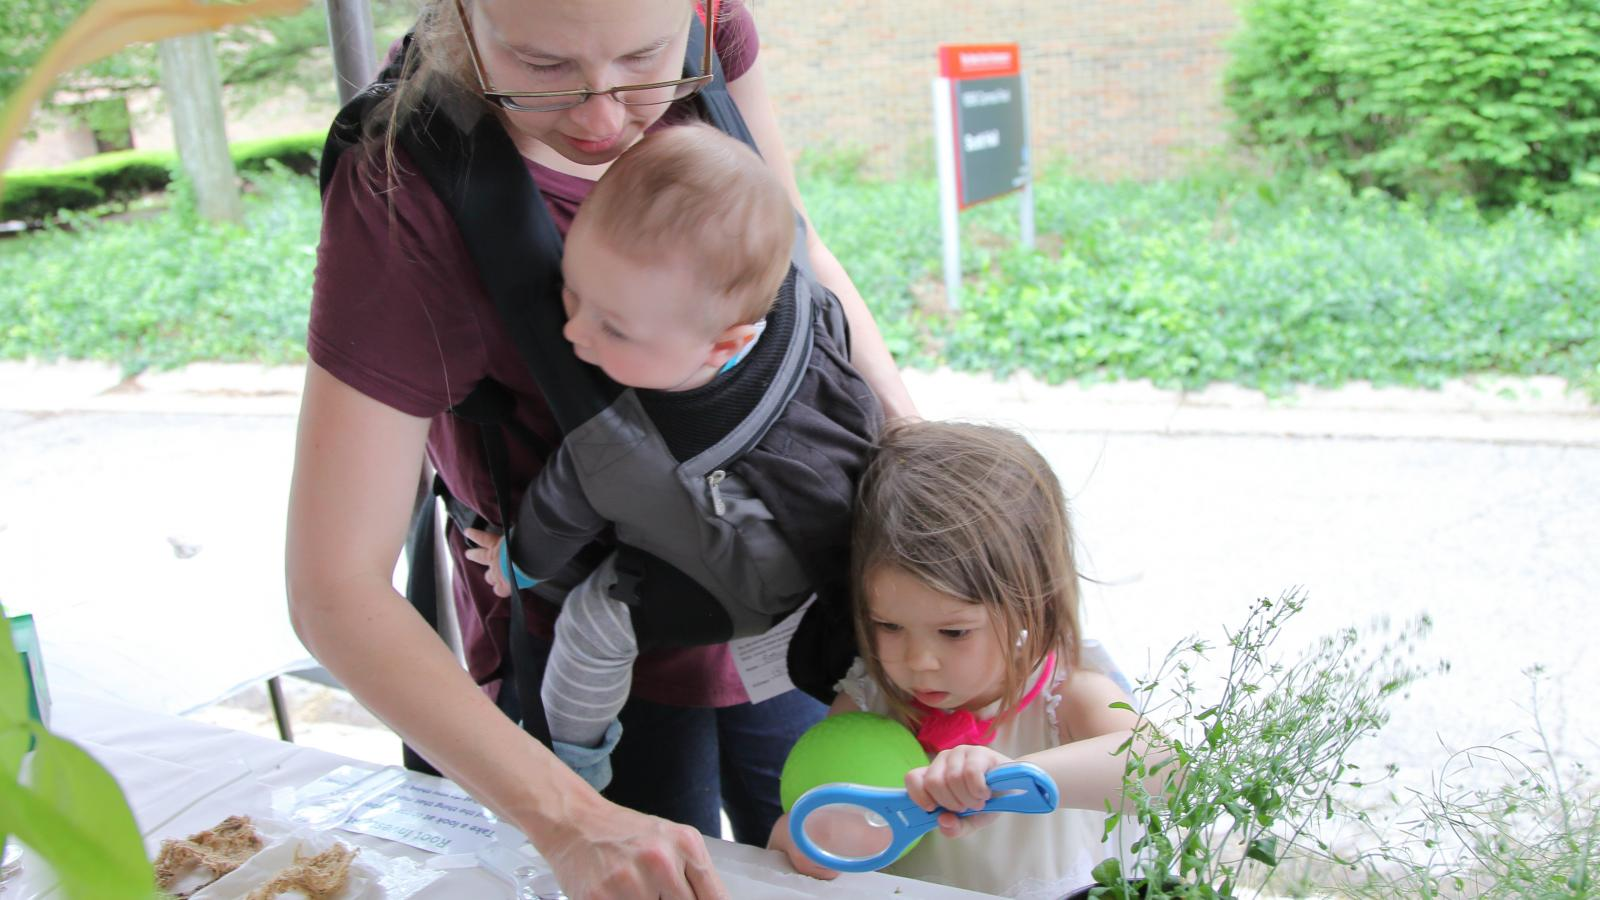 A family explore plants at WestFest 2018